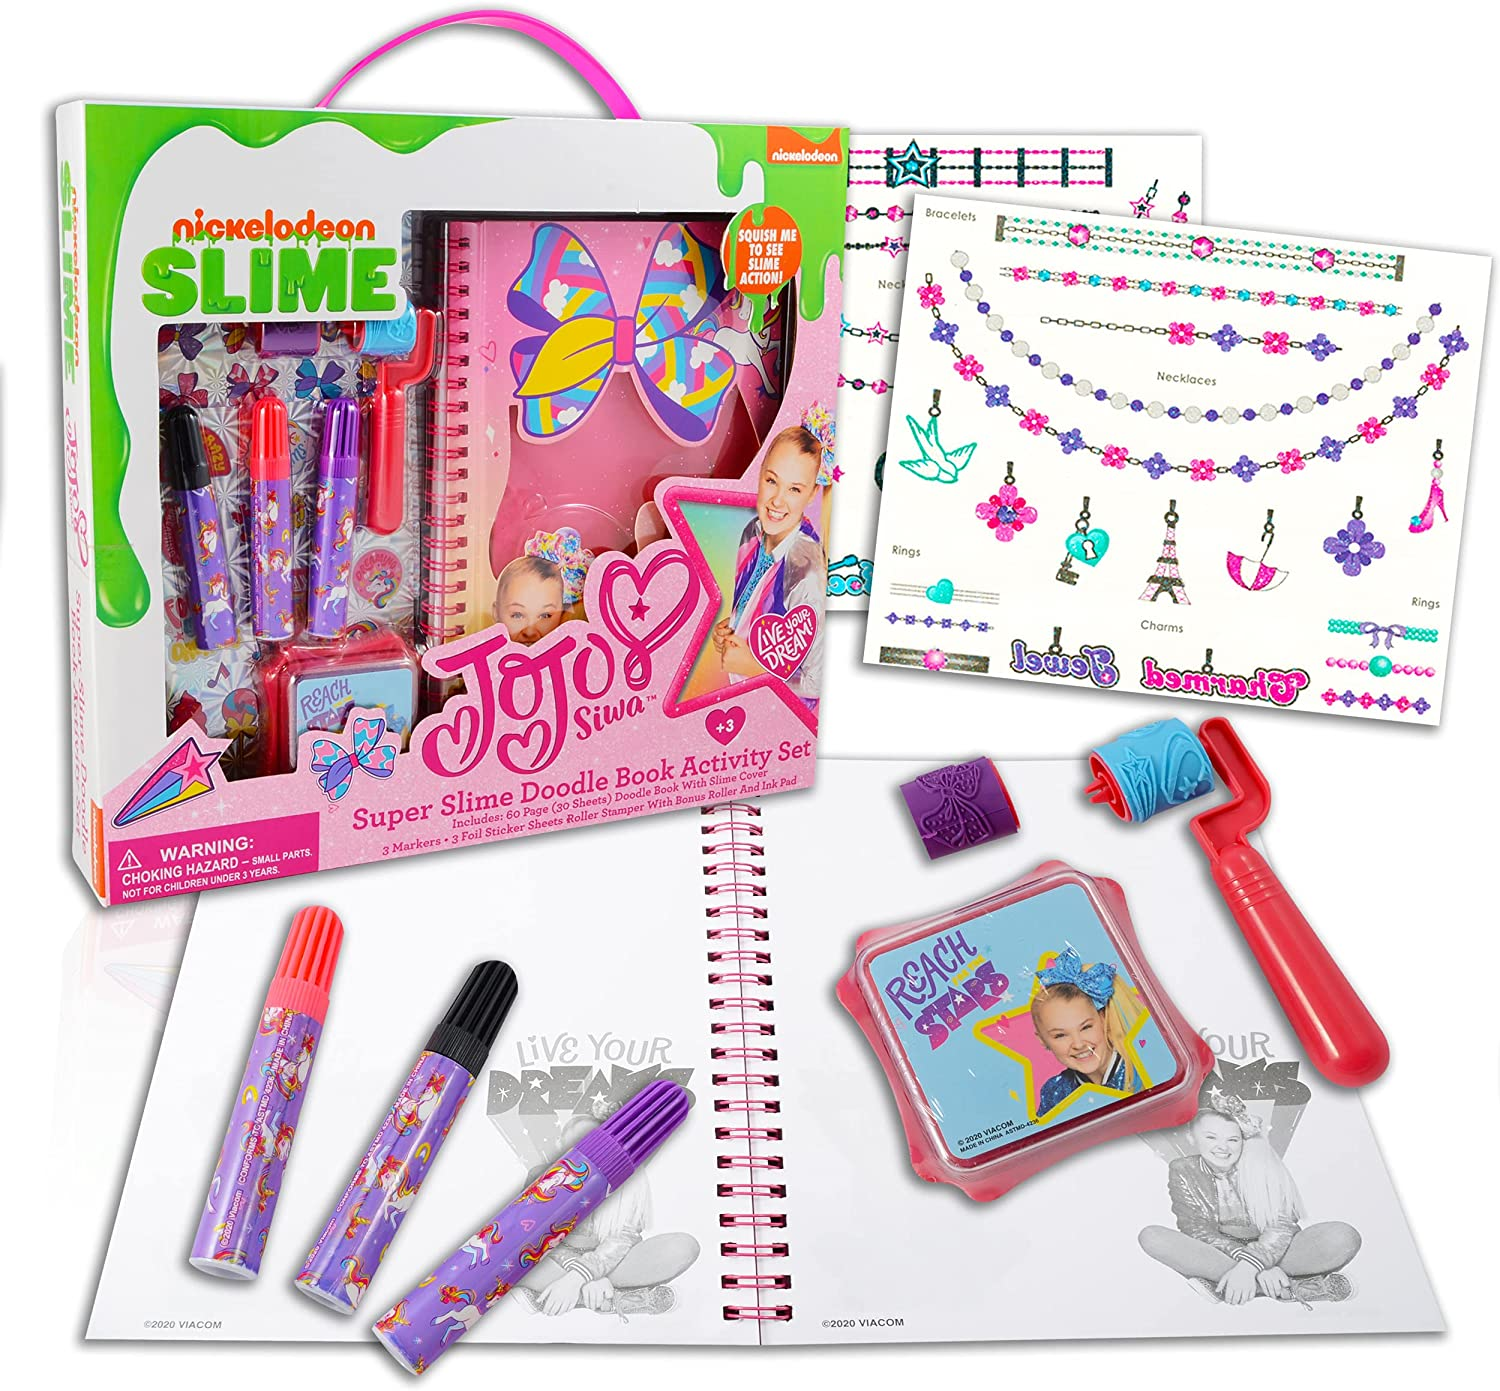 Nick Shop JoJo Siwa Slime Online limited Bombing free shipping product Bundle Accessories Journal ~